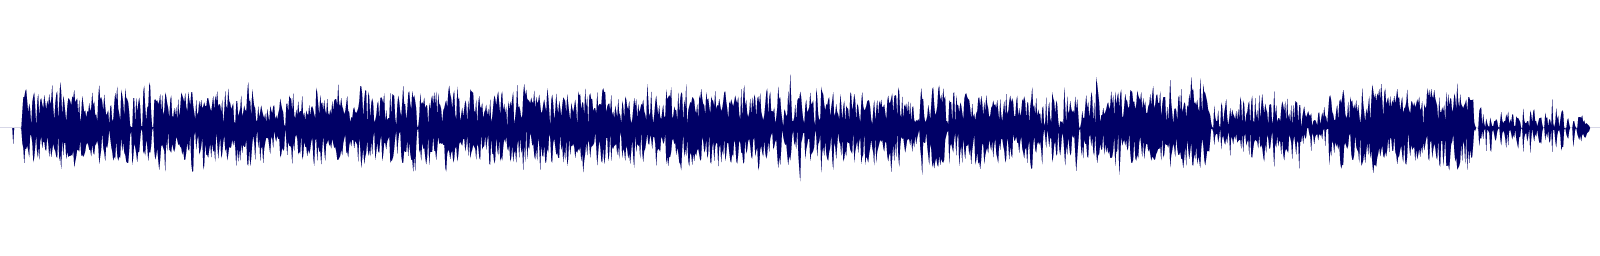 waveform of track #112014